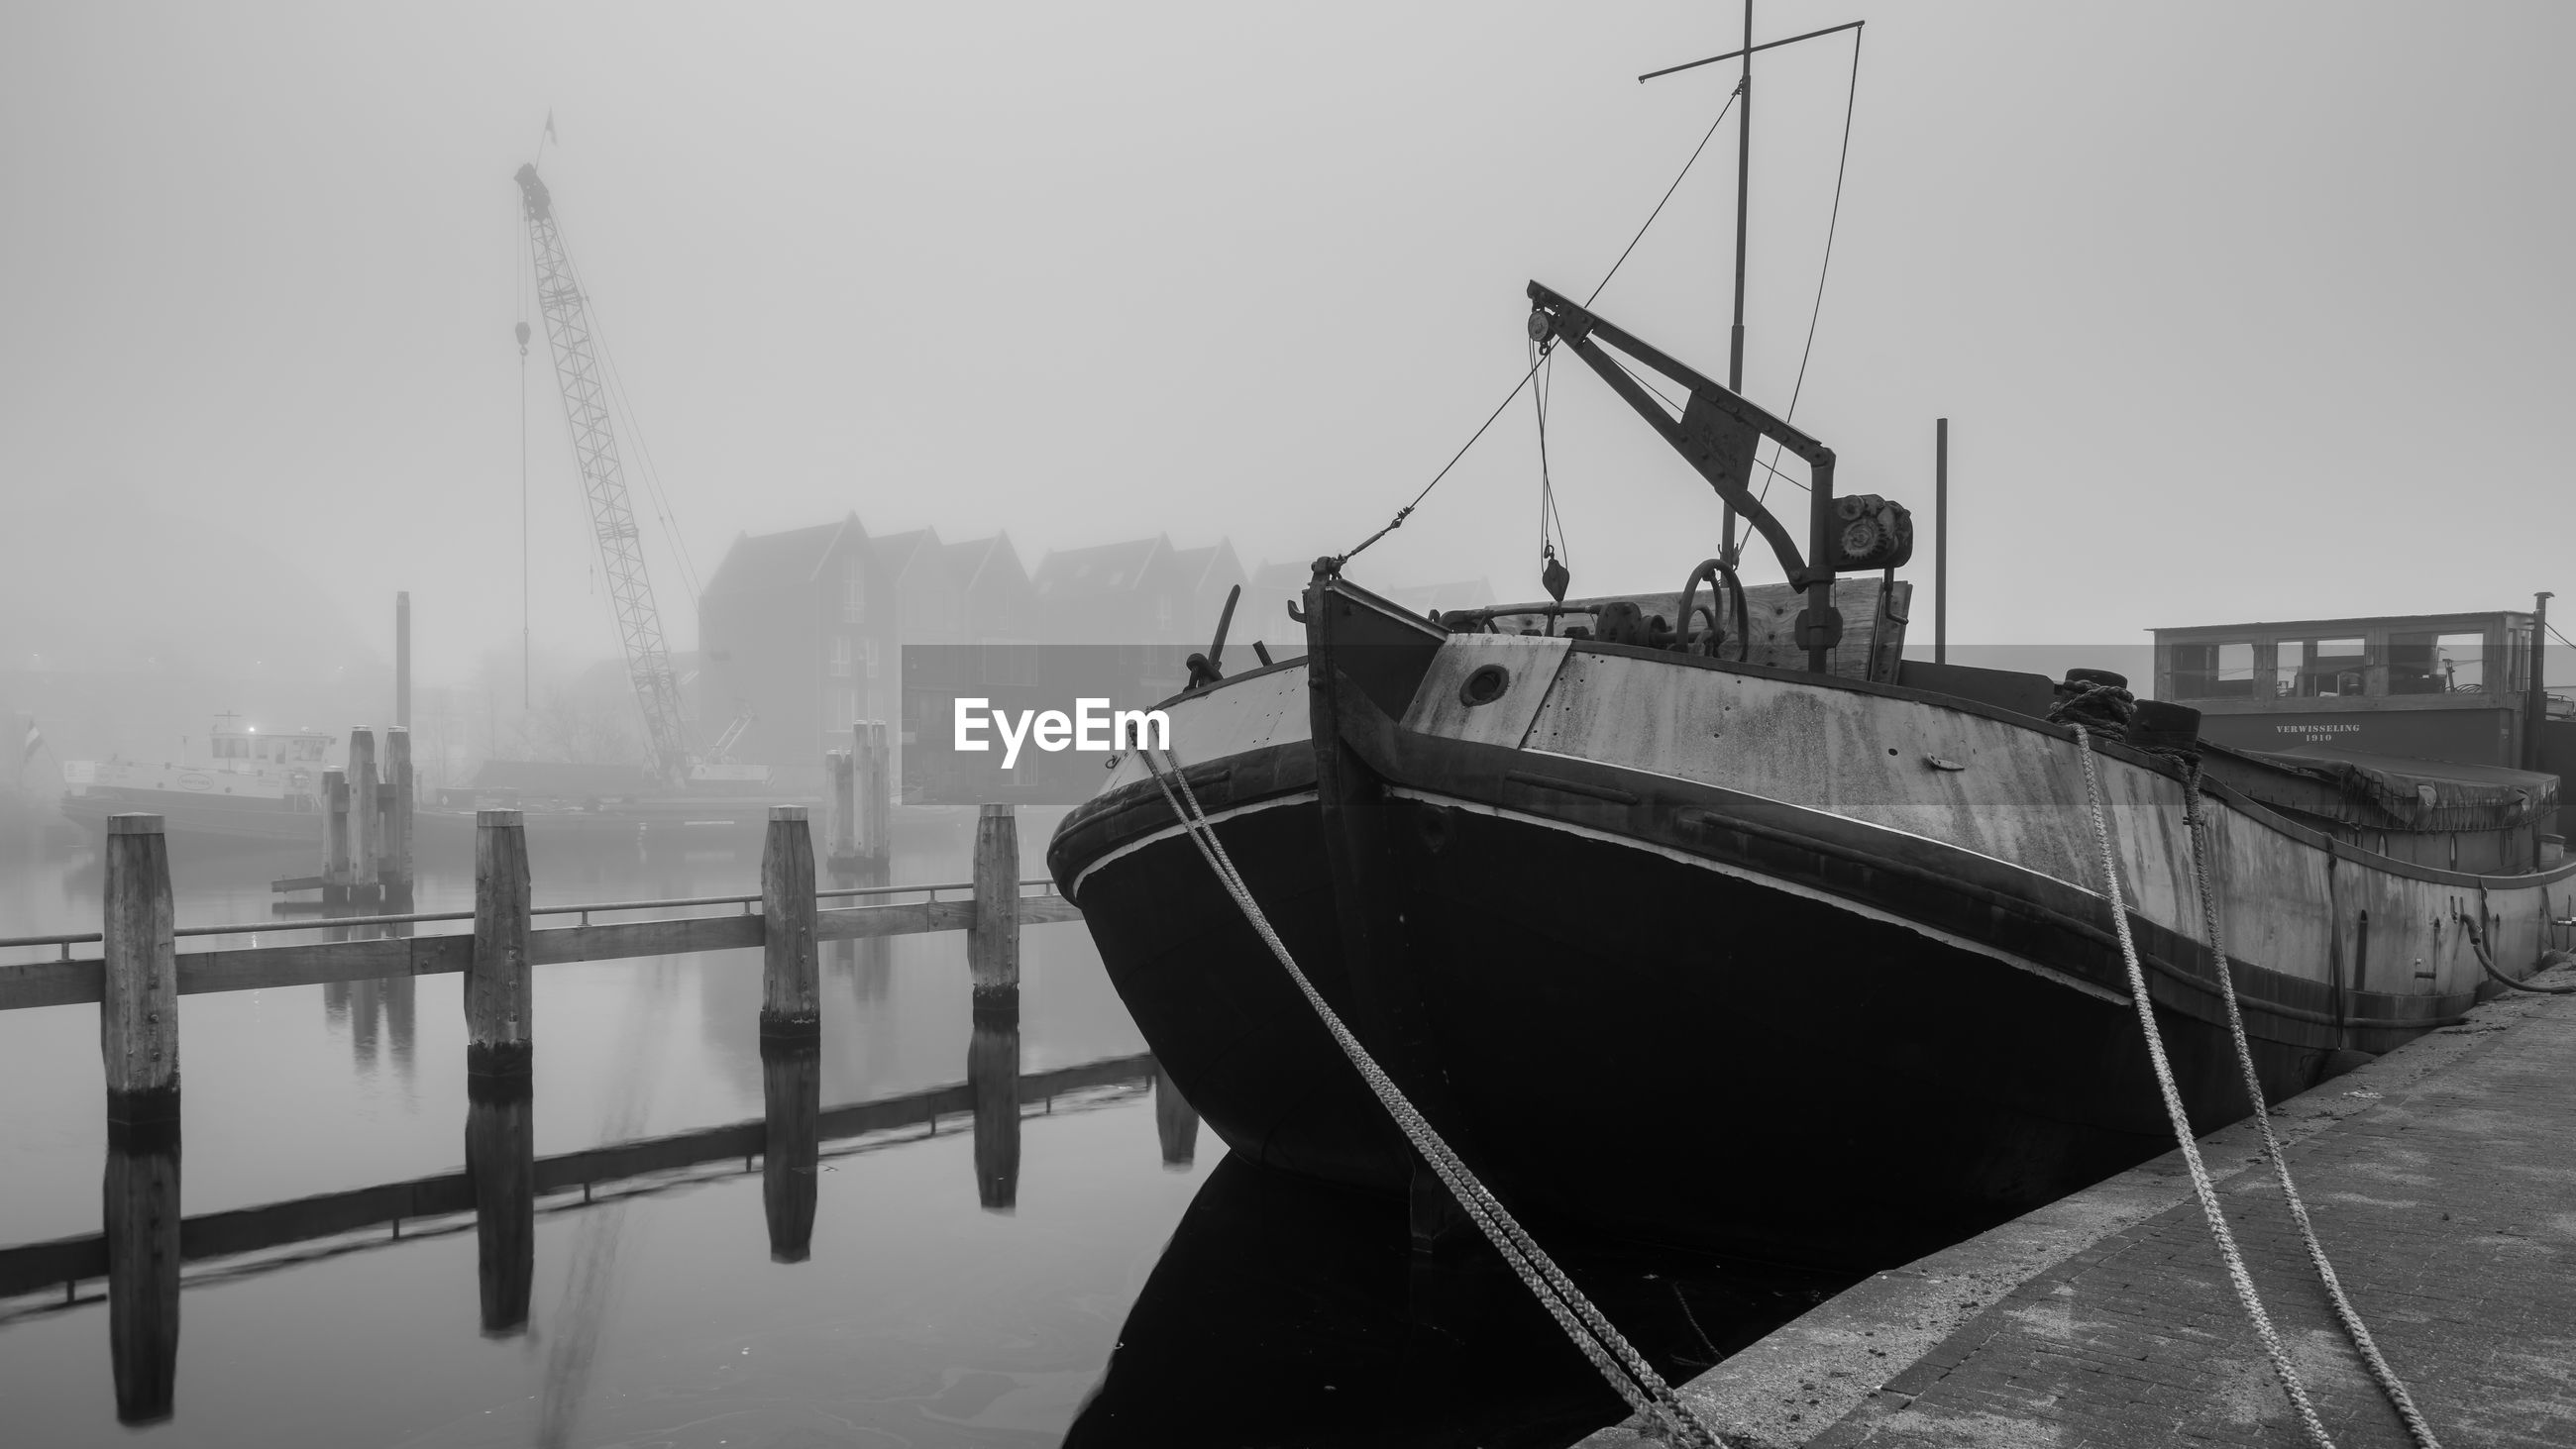 Boat moored on lake during foggy weather